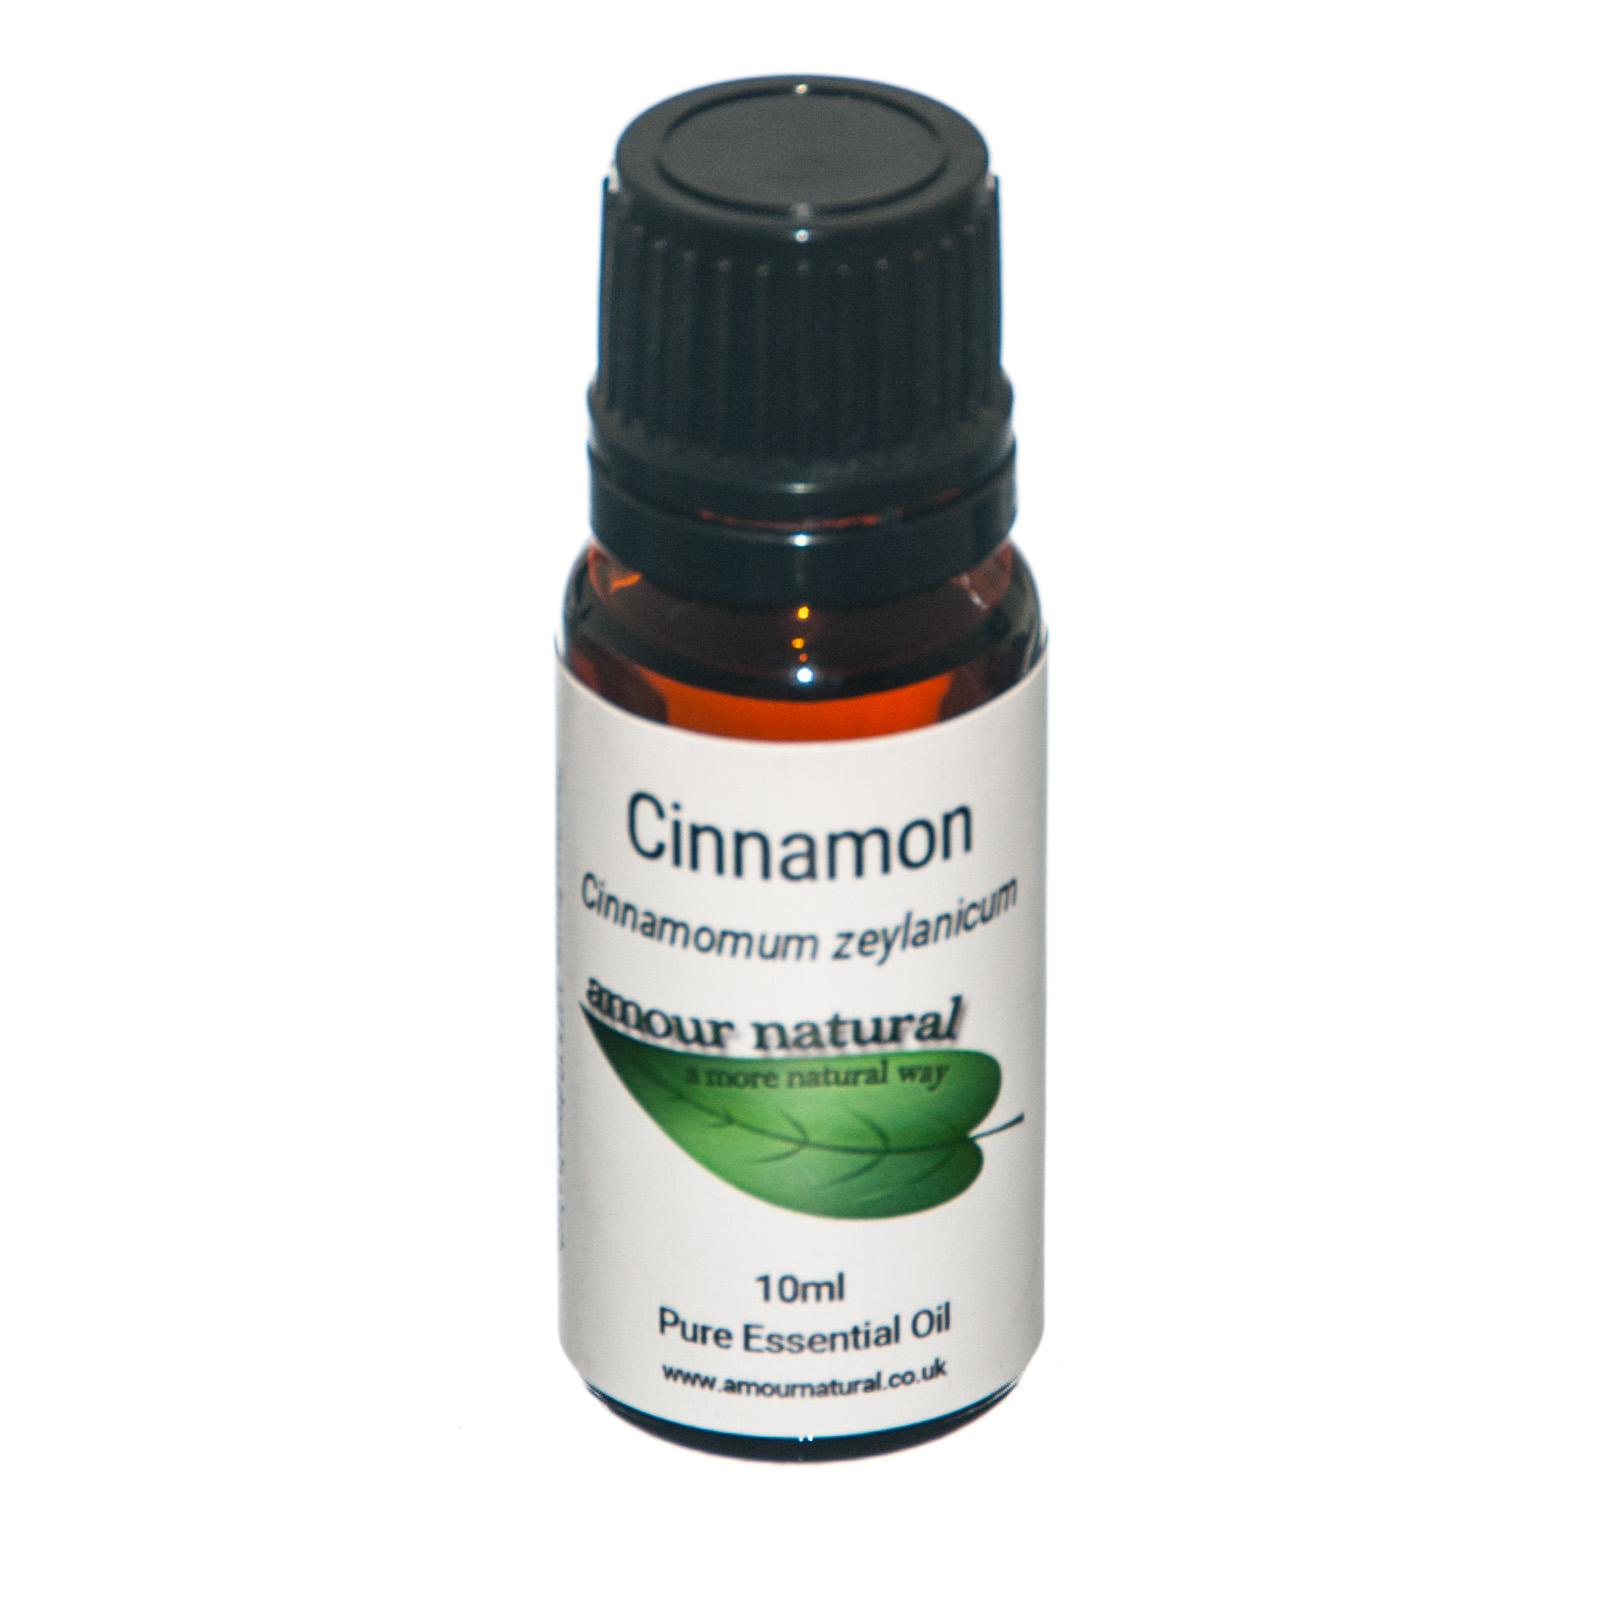 1 X 10 ml bottle of Cinnamon Essential Oil